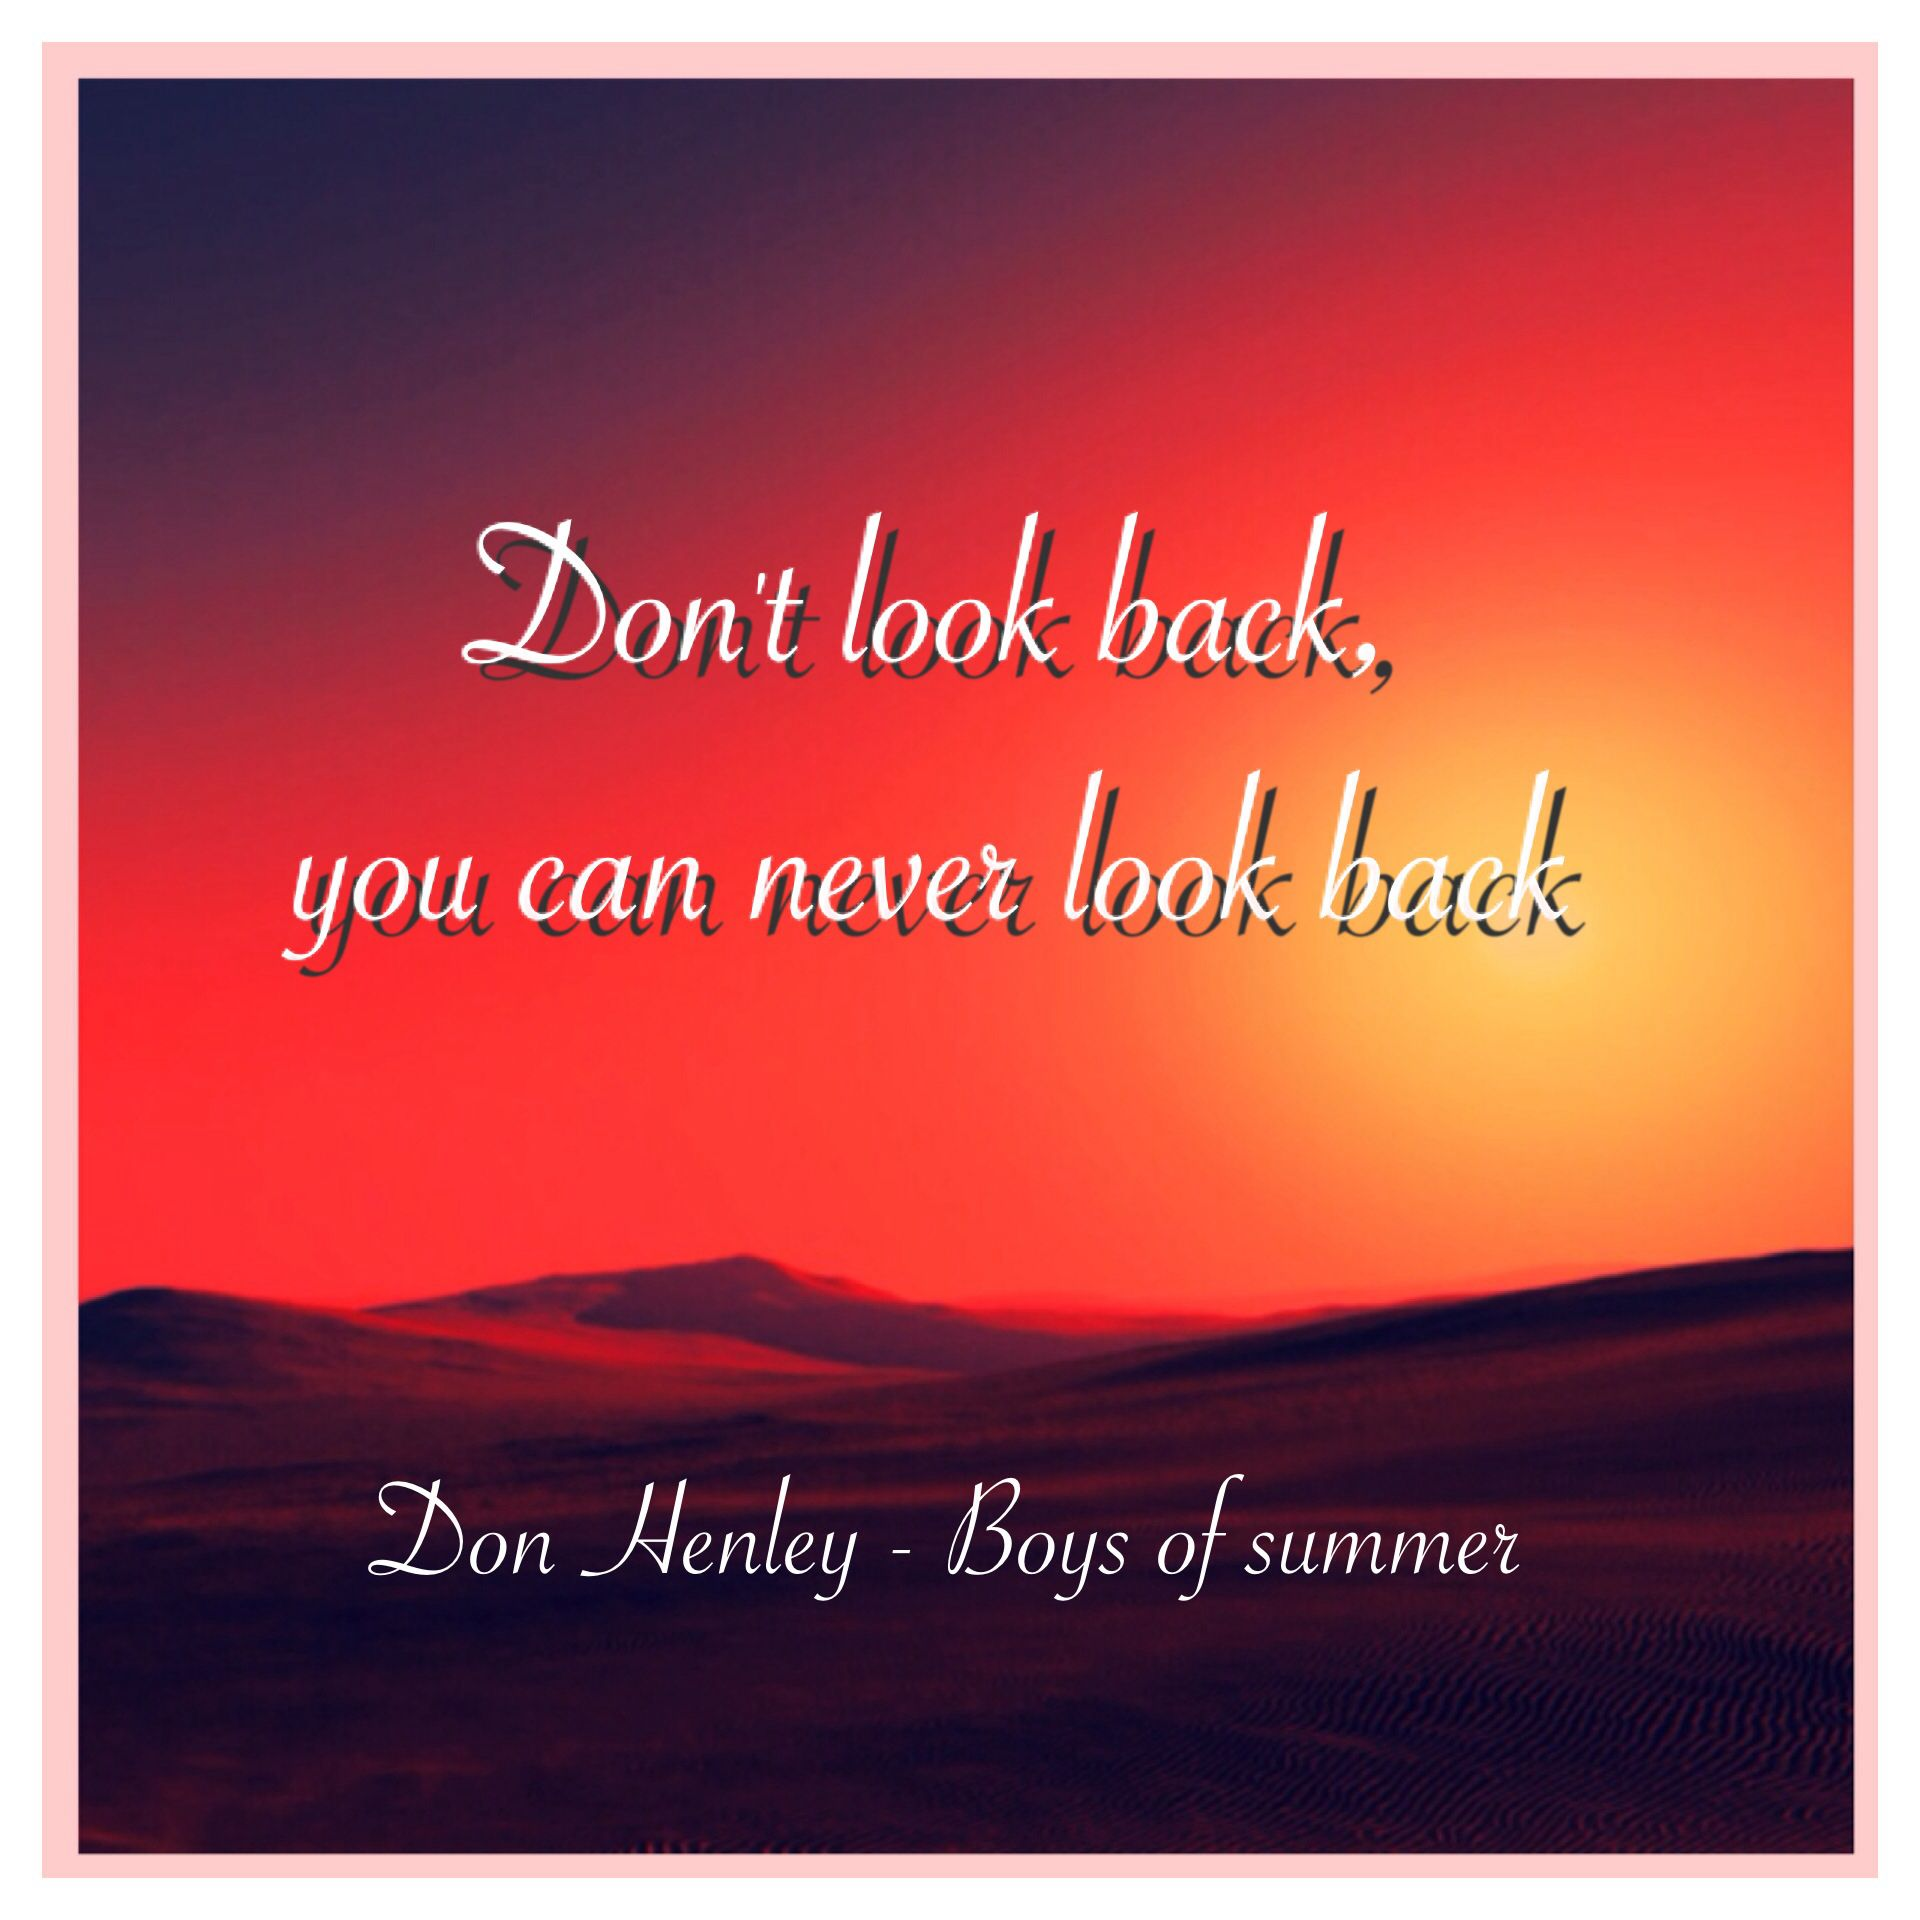 Summer Come Back Quotes: Don't Look Back, You Can Never Look Back Don Henley